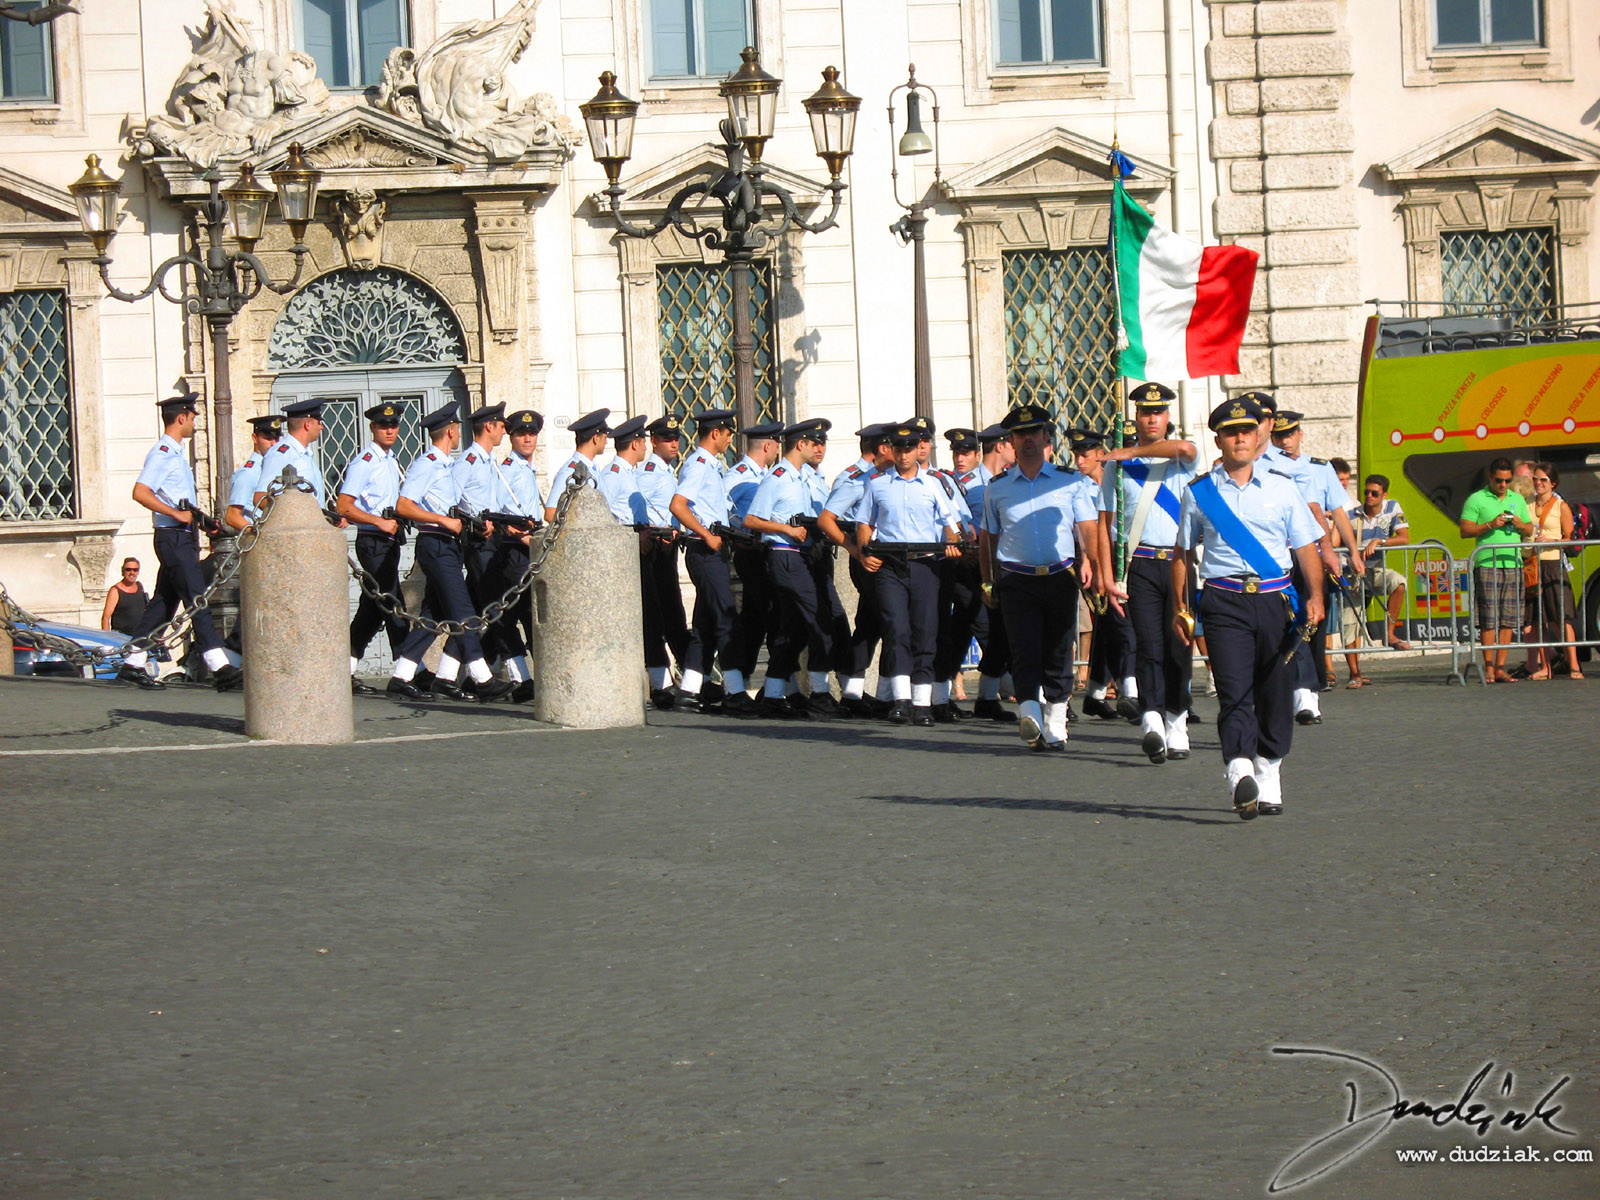 soldiers,  Palazzo Quirinale,  Roma,  Rome,  changing of the guard,  Italy,  Italian Soldiers